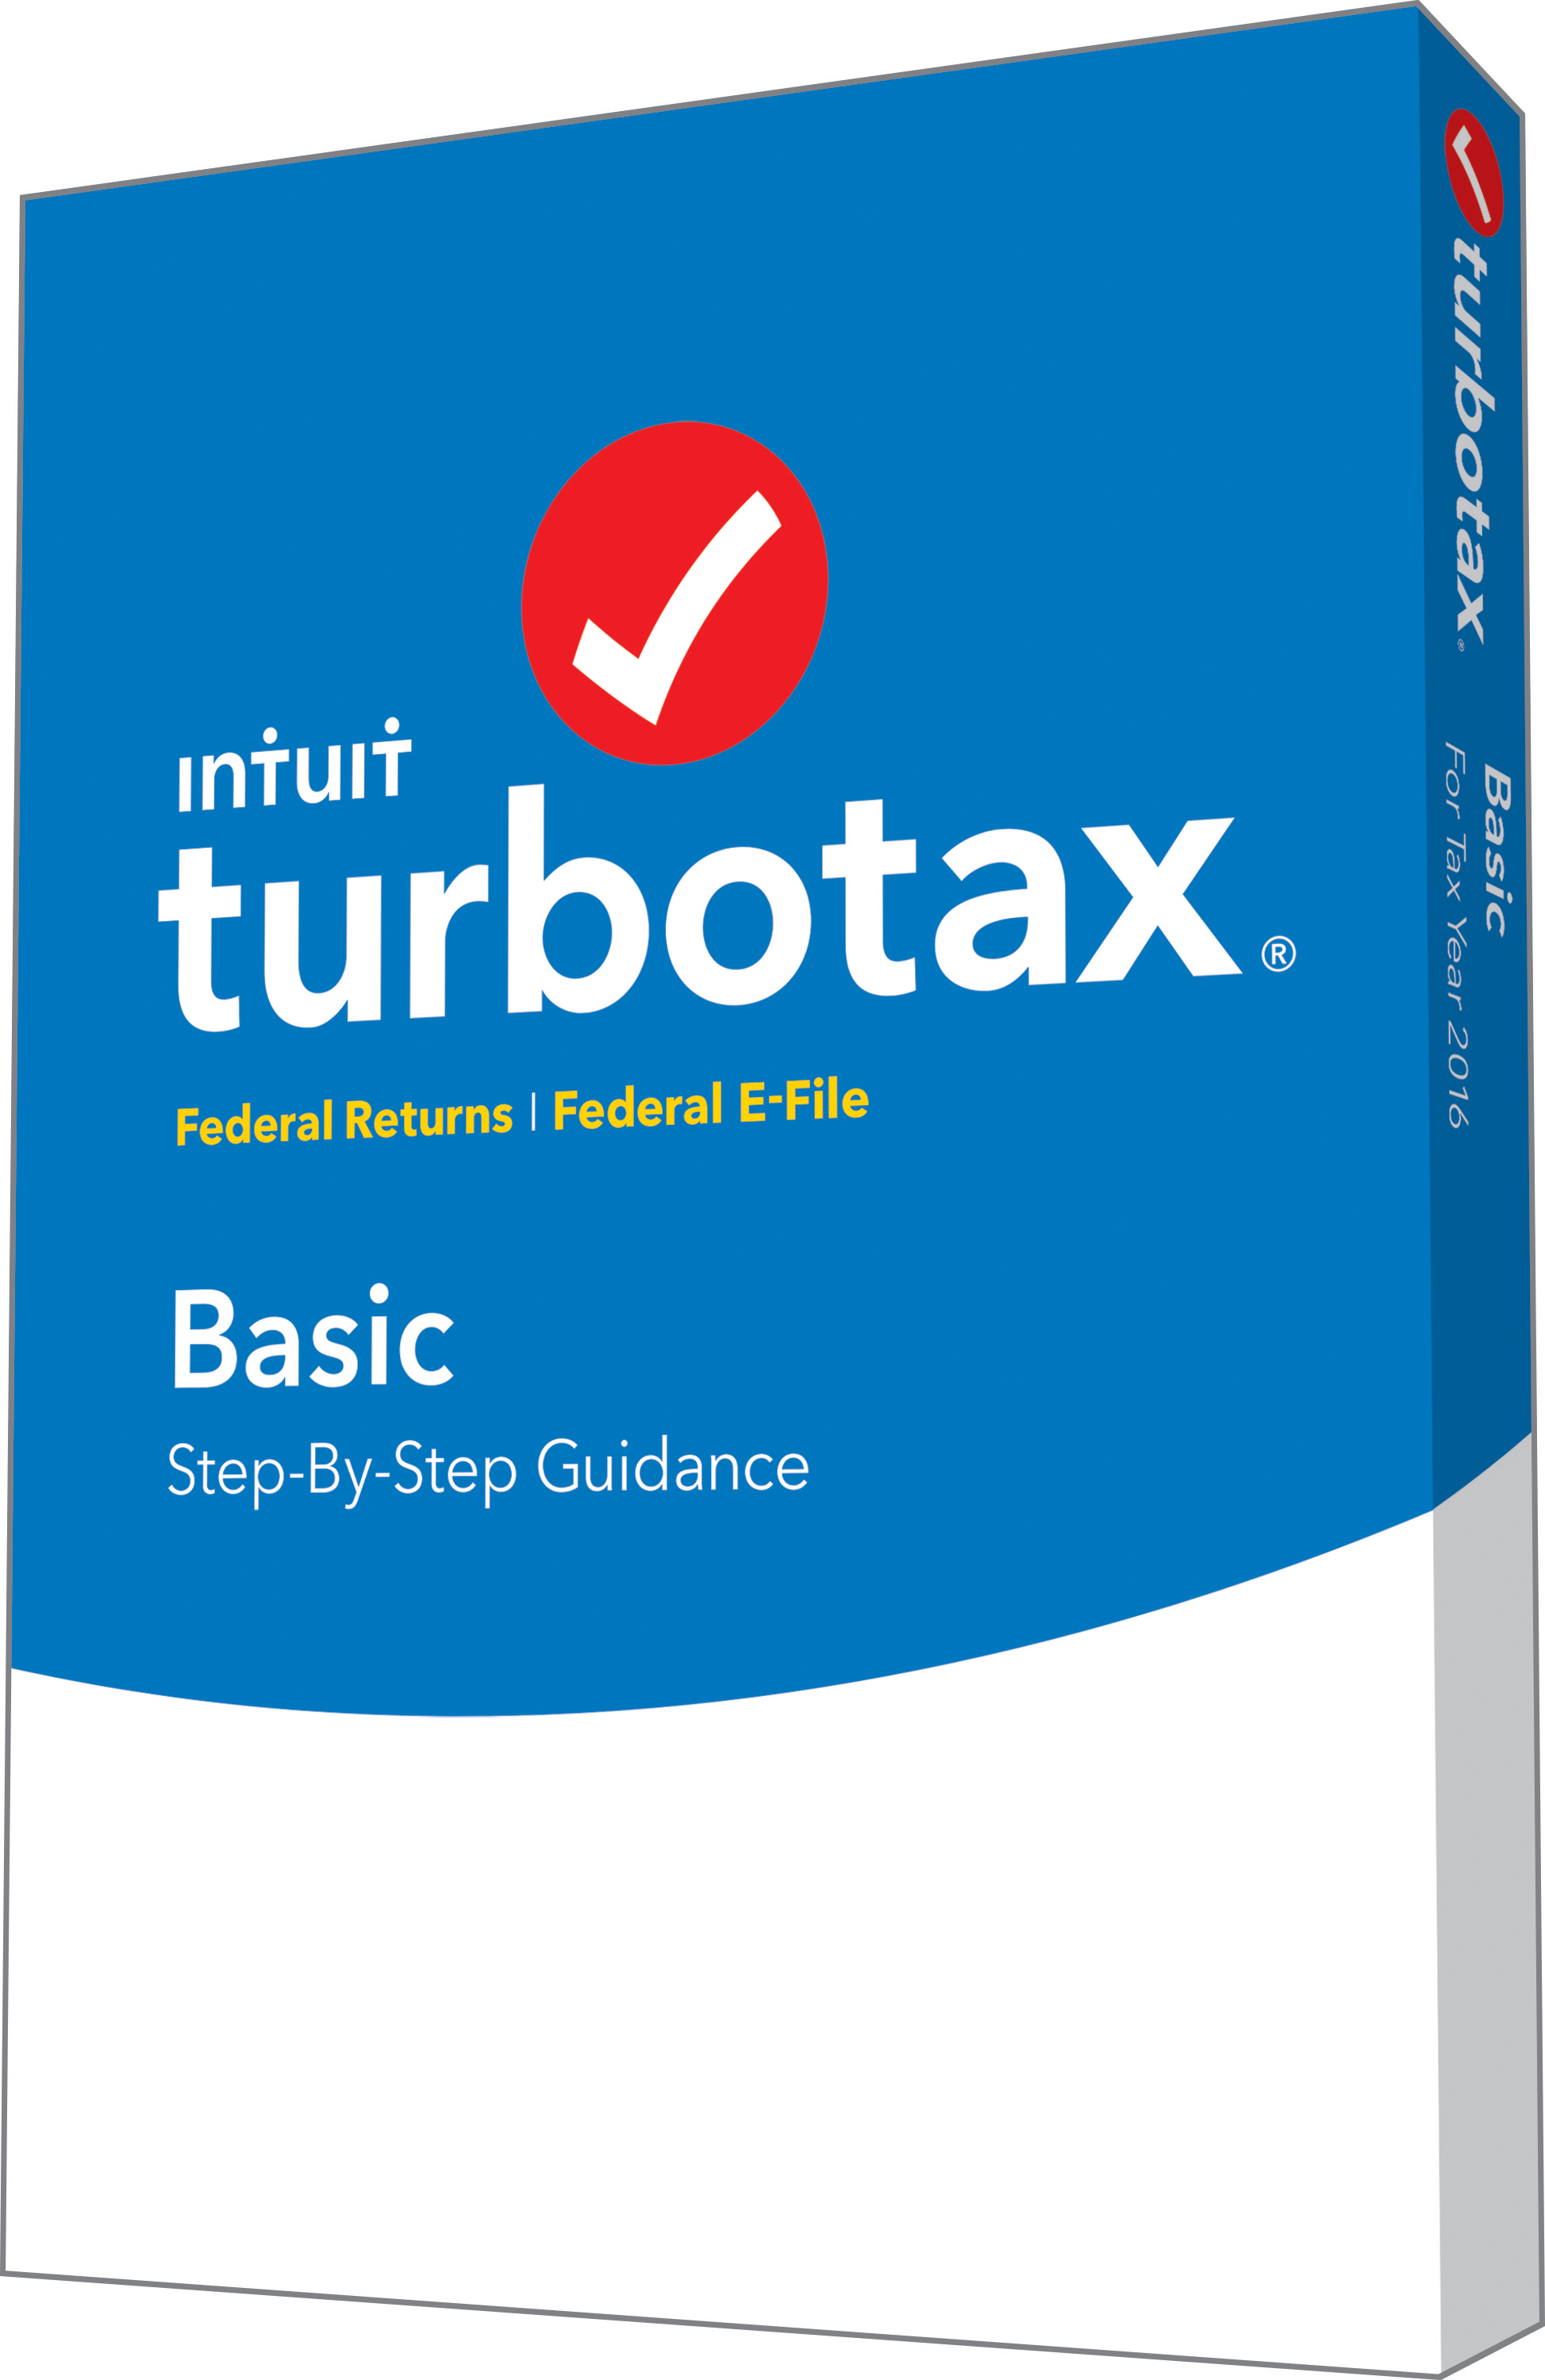 TurboTax® is the #1 best-selling tax preparation software to file taxes online. Easily file federal and state income tax returns with % accuracy to get your maximum tax refund guaranteed. Start for free today and join the millions who file with TurboTax.